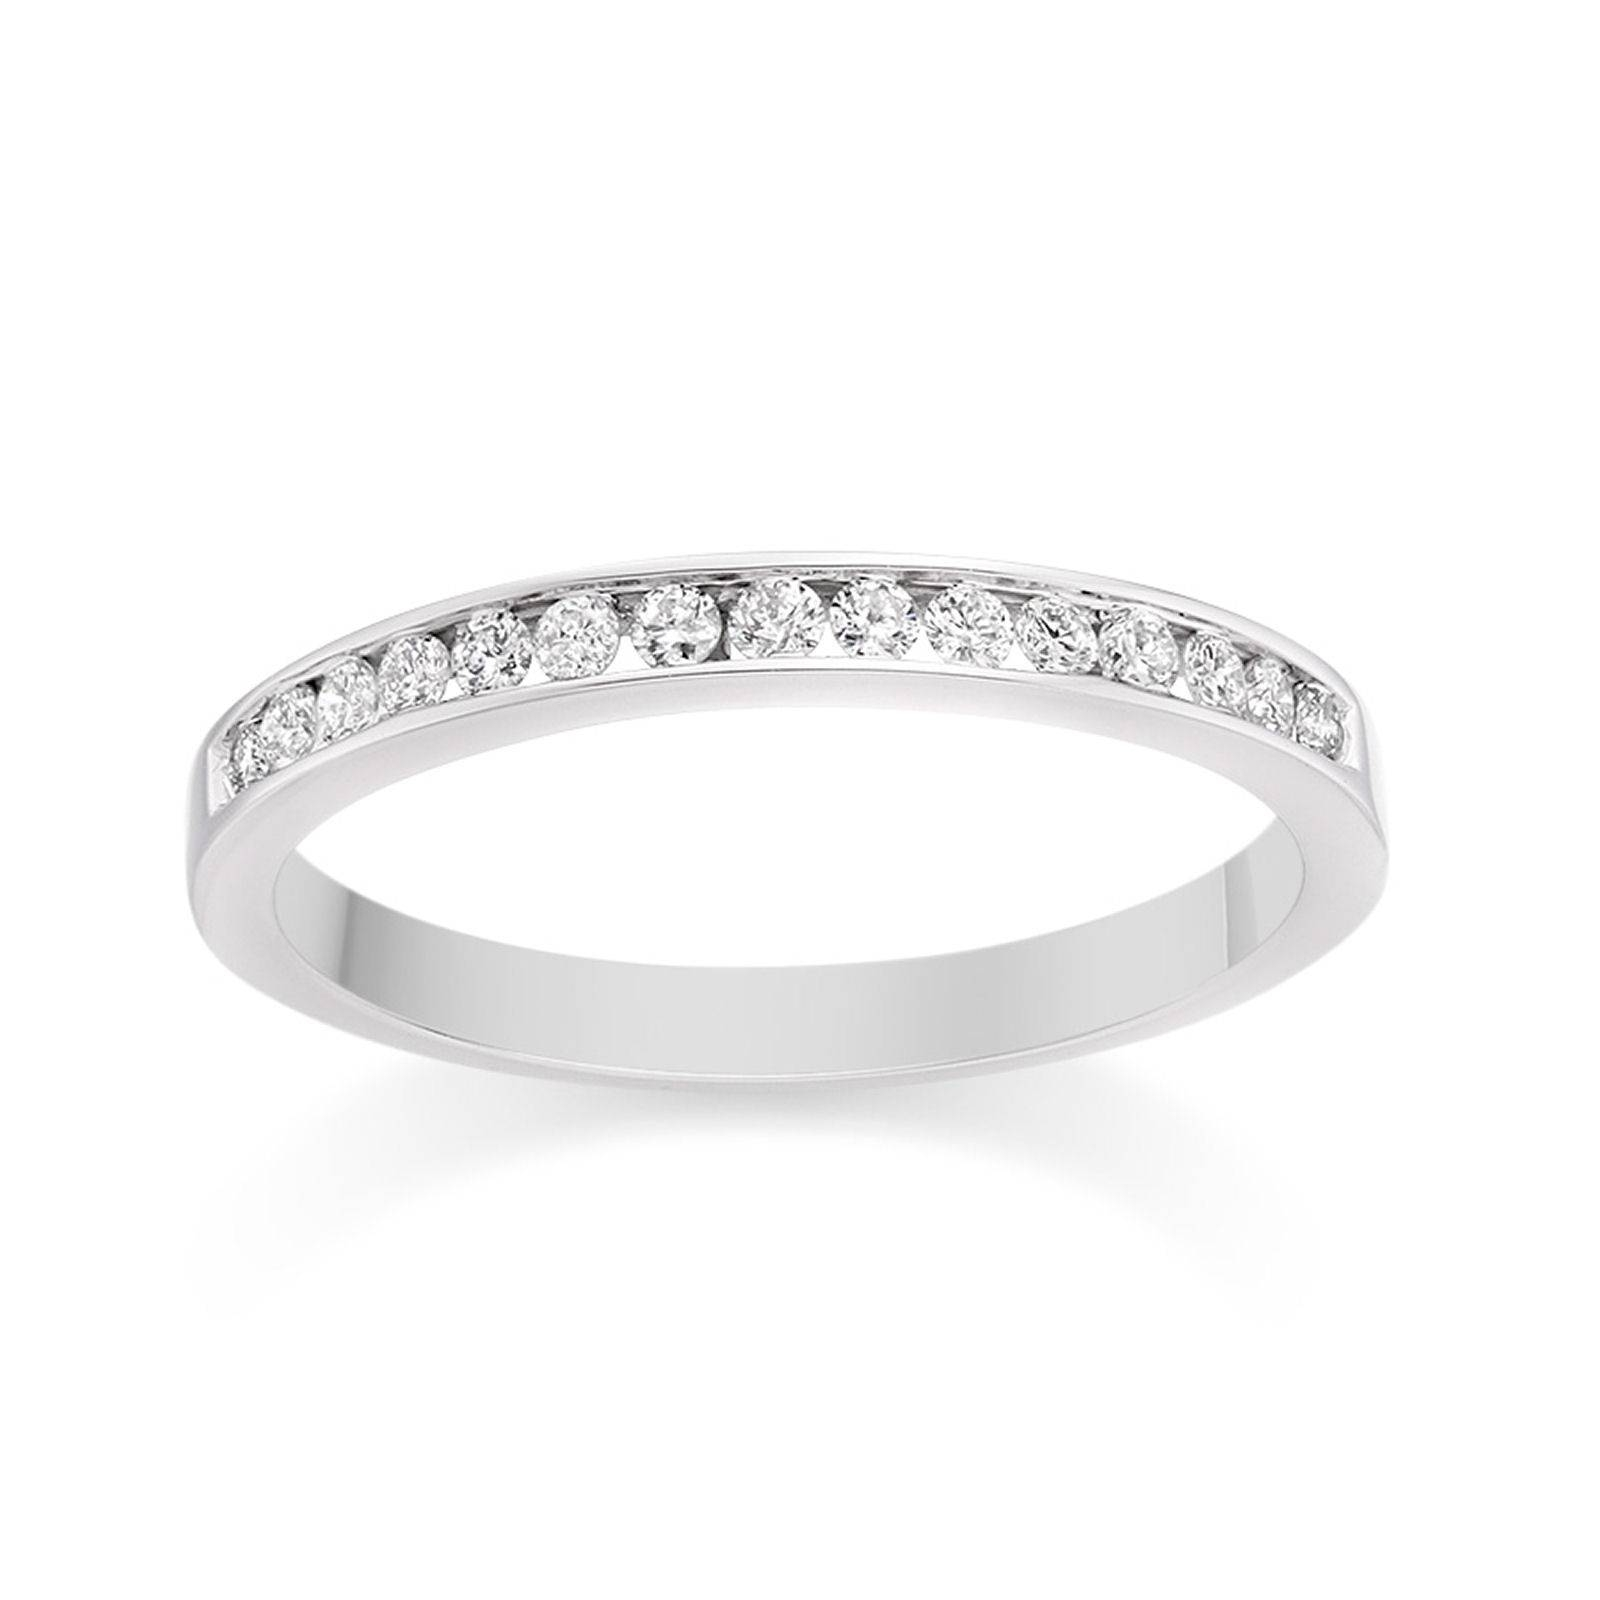 Channel Set Diamond Wedding Ring In Platinum Wedding Dress From For Most Recently Released Platinum Diamond Wedding Bands (View 6 of 15)